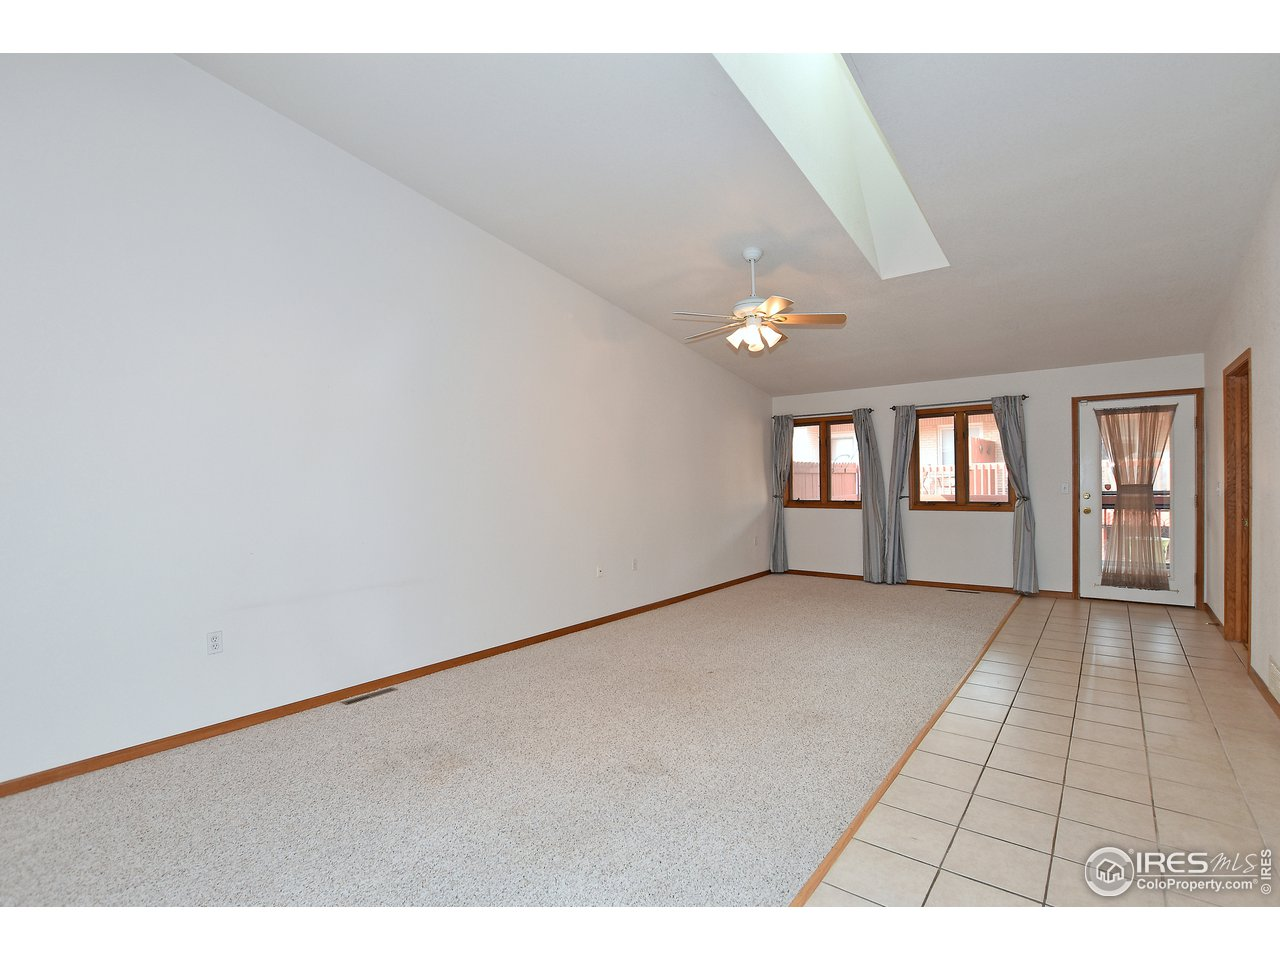 Dining room is 14'X10' - vaulted ceiling